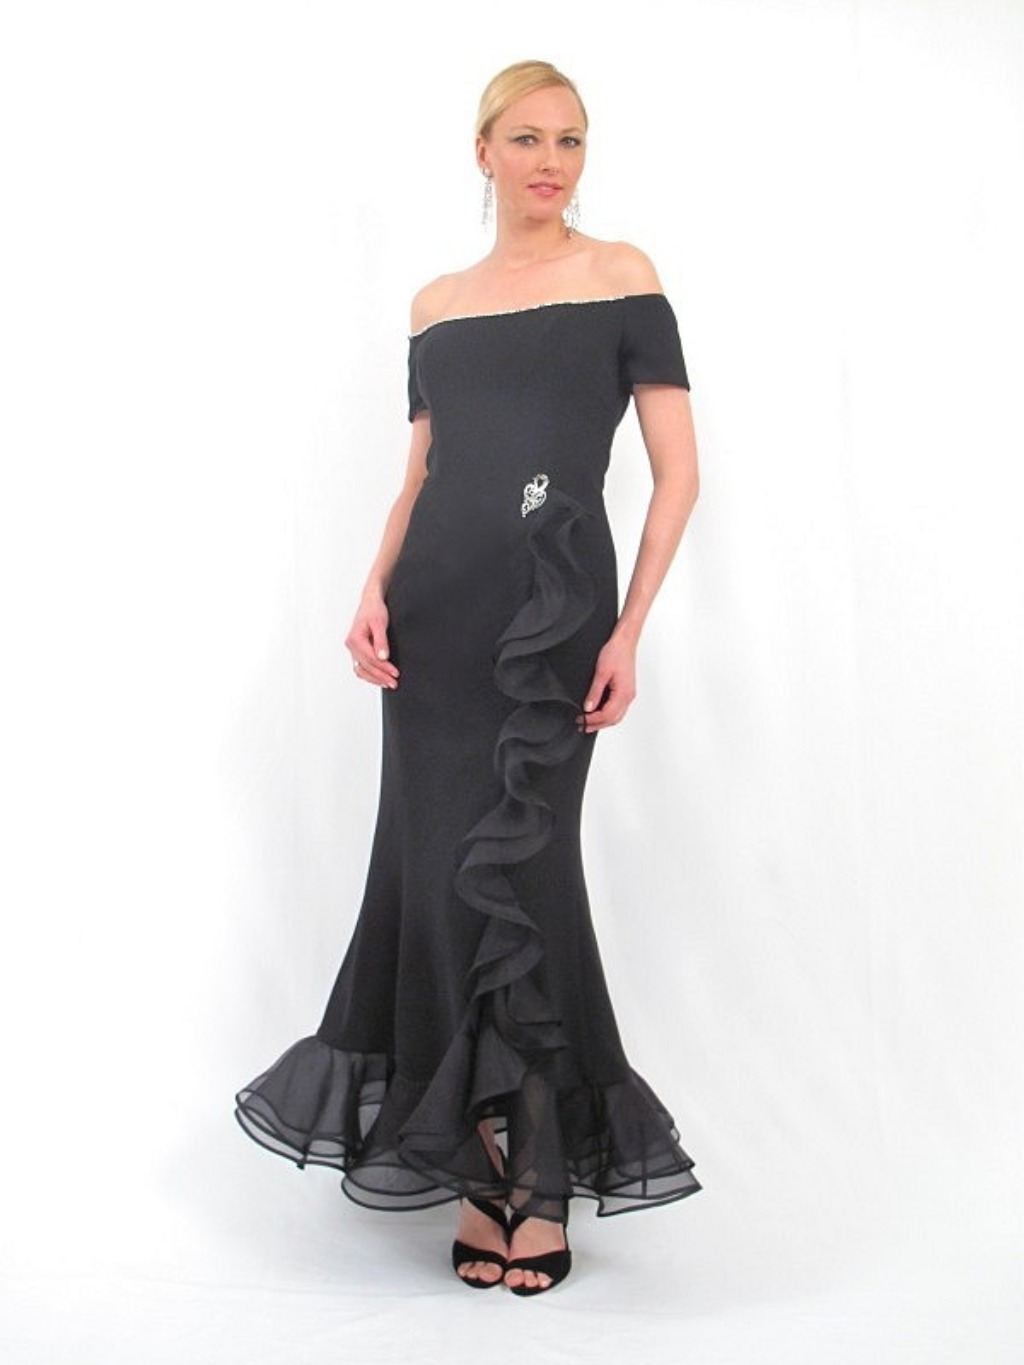 Ideas By Barbara Evening Wear Trunk Show